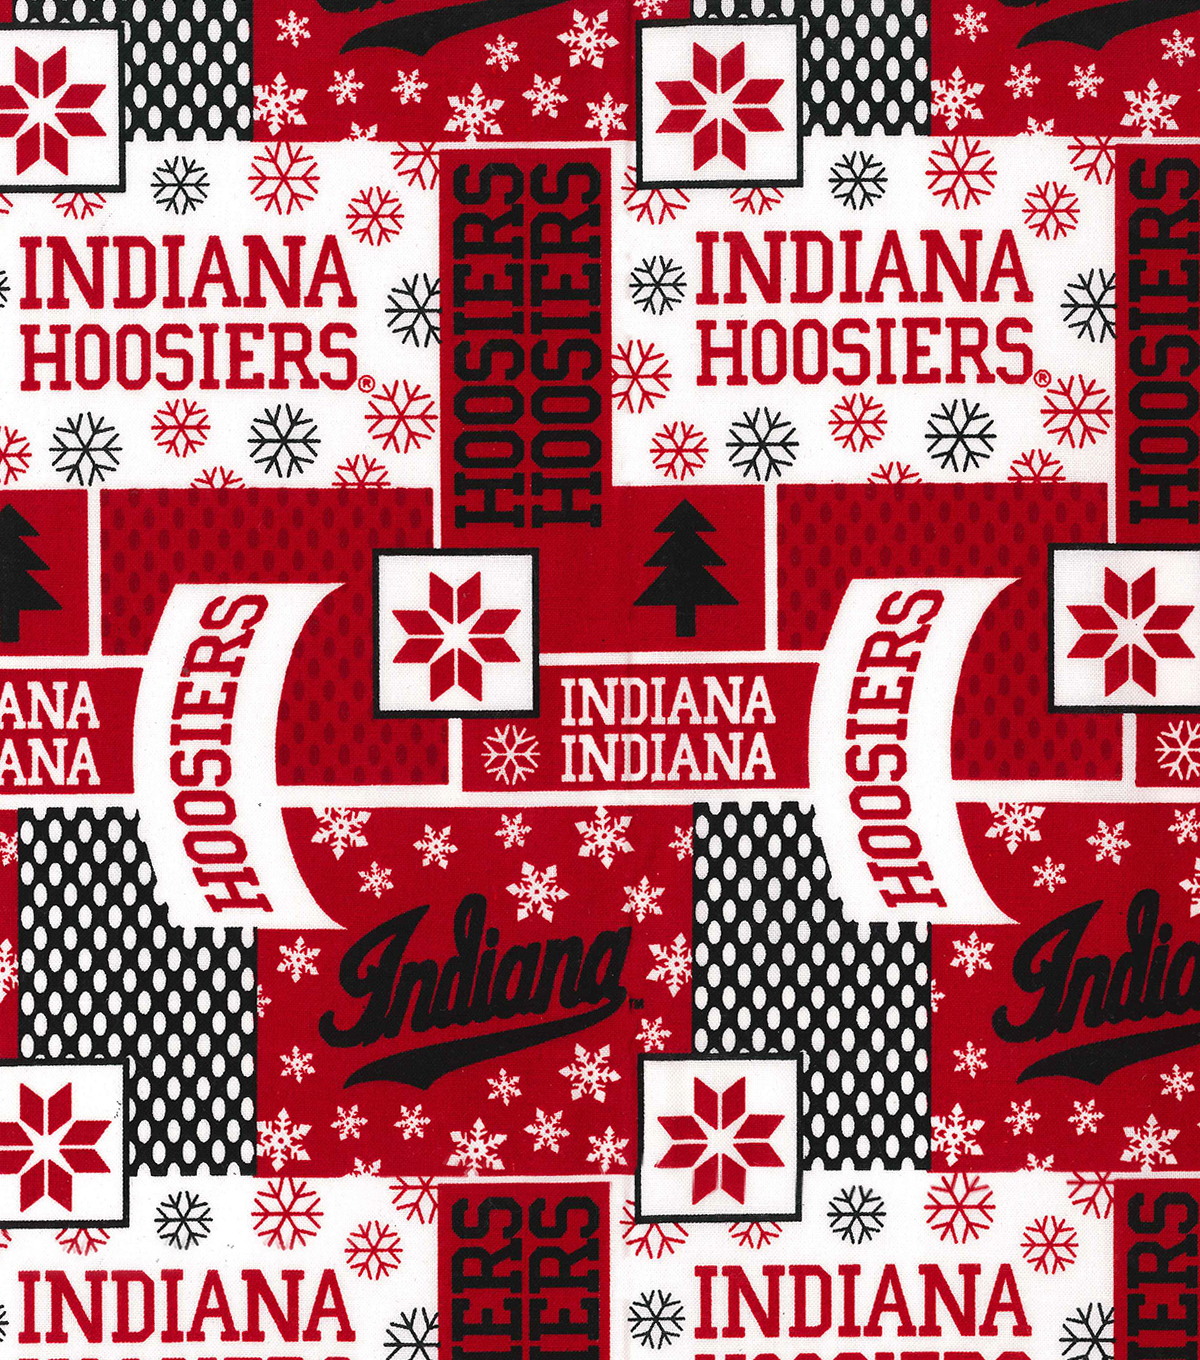 Indiana University Hoosiers Cotton Fabric-Winter